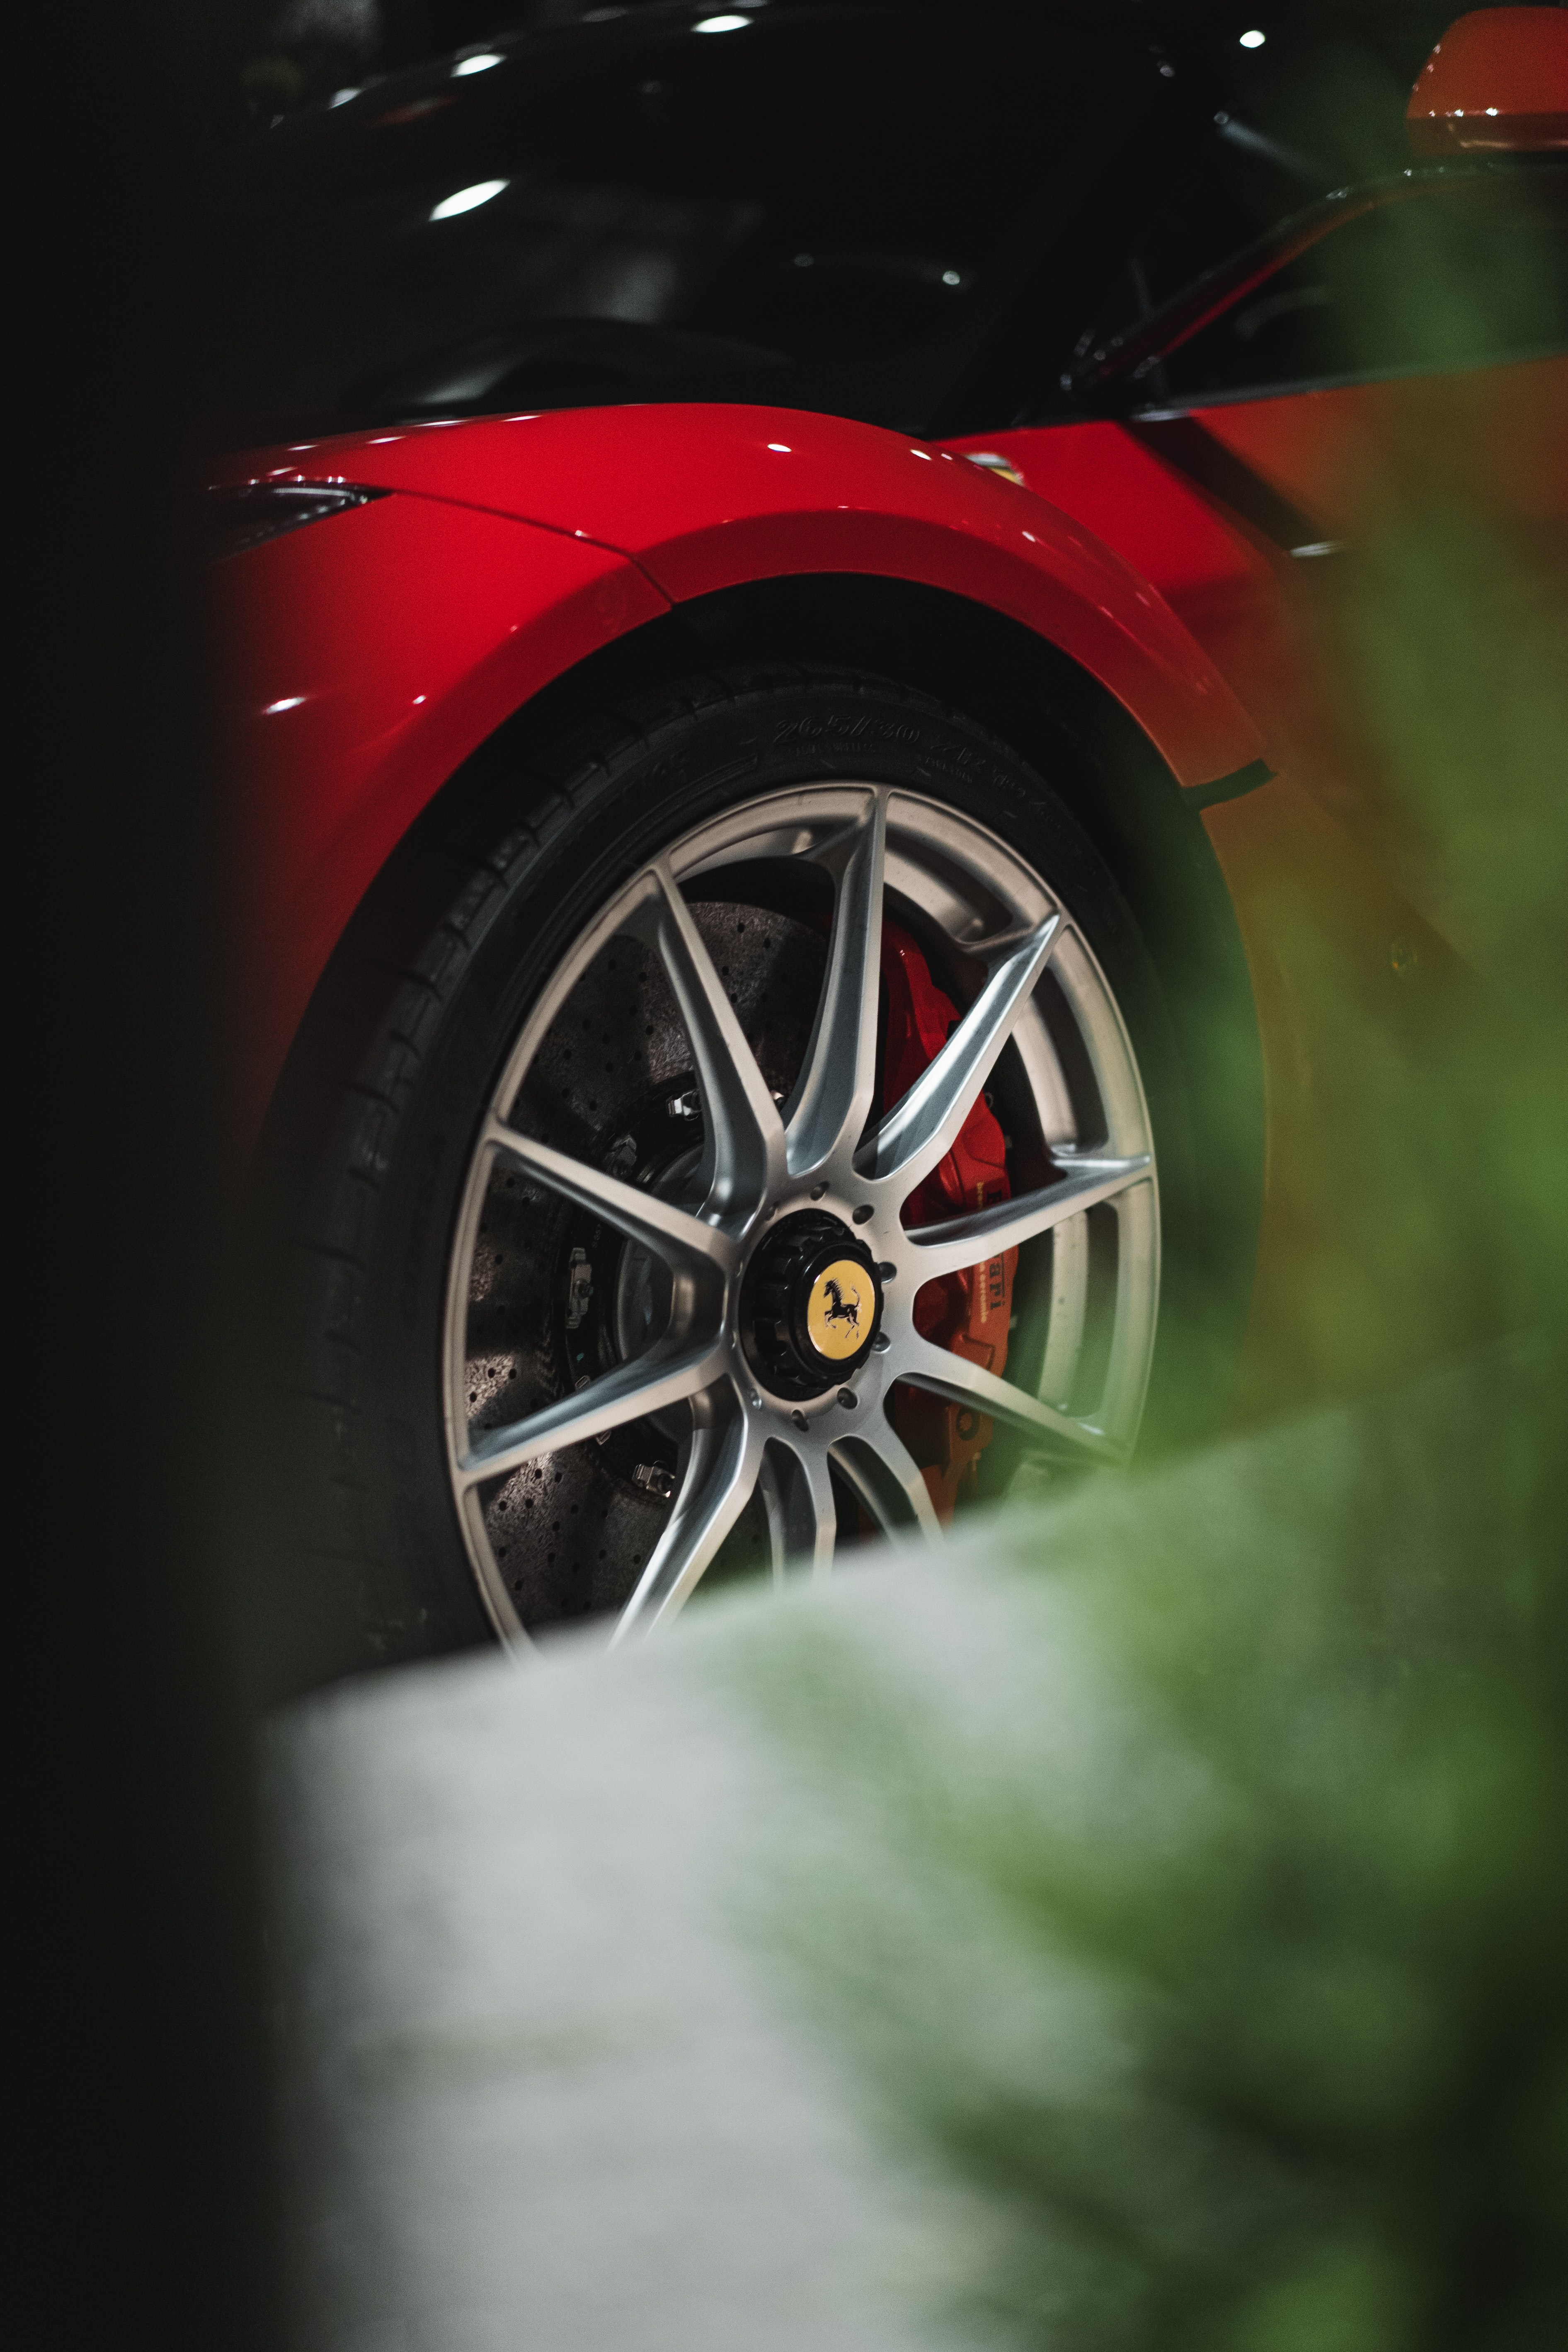 105886 download wallpaper Cars, Ferrari, Car, Sports Car, Sports, Wheel screensavers and pictures for free